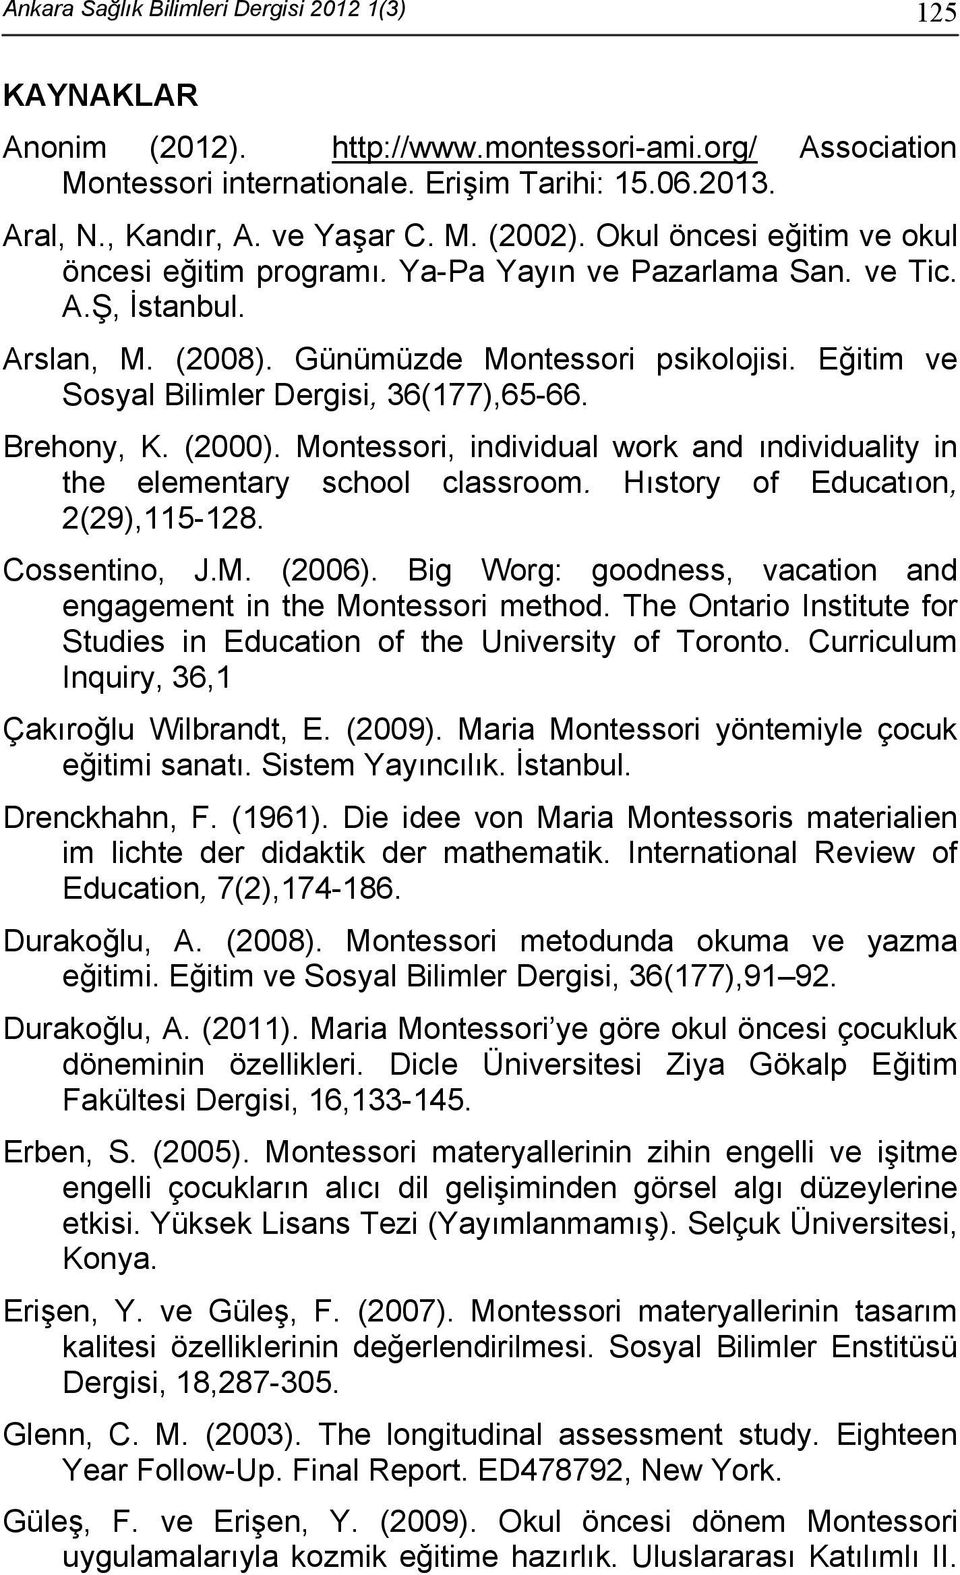 Eğitim ve Sosyal Bilimler Dergisi, 36(177),65-66. Brehony, K. (2000). Montessori, individual work and ındividuality in the elementary school classroom. Hıstory of Educatıon, 2(29),115-128.